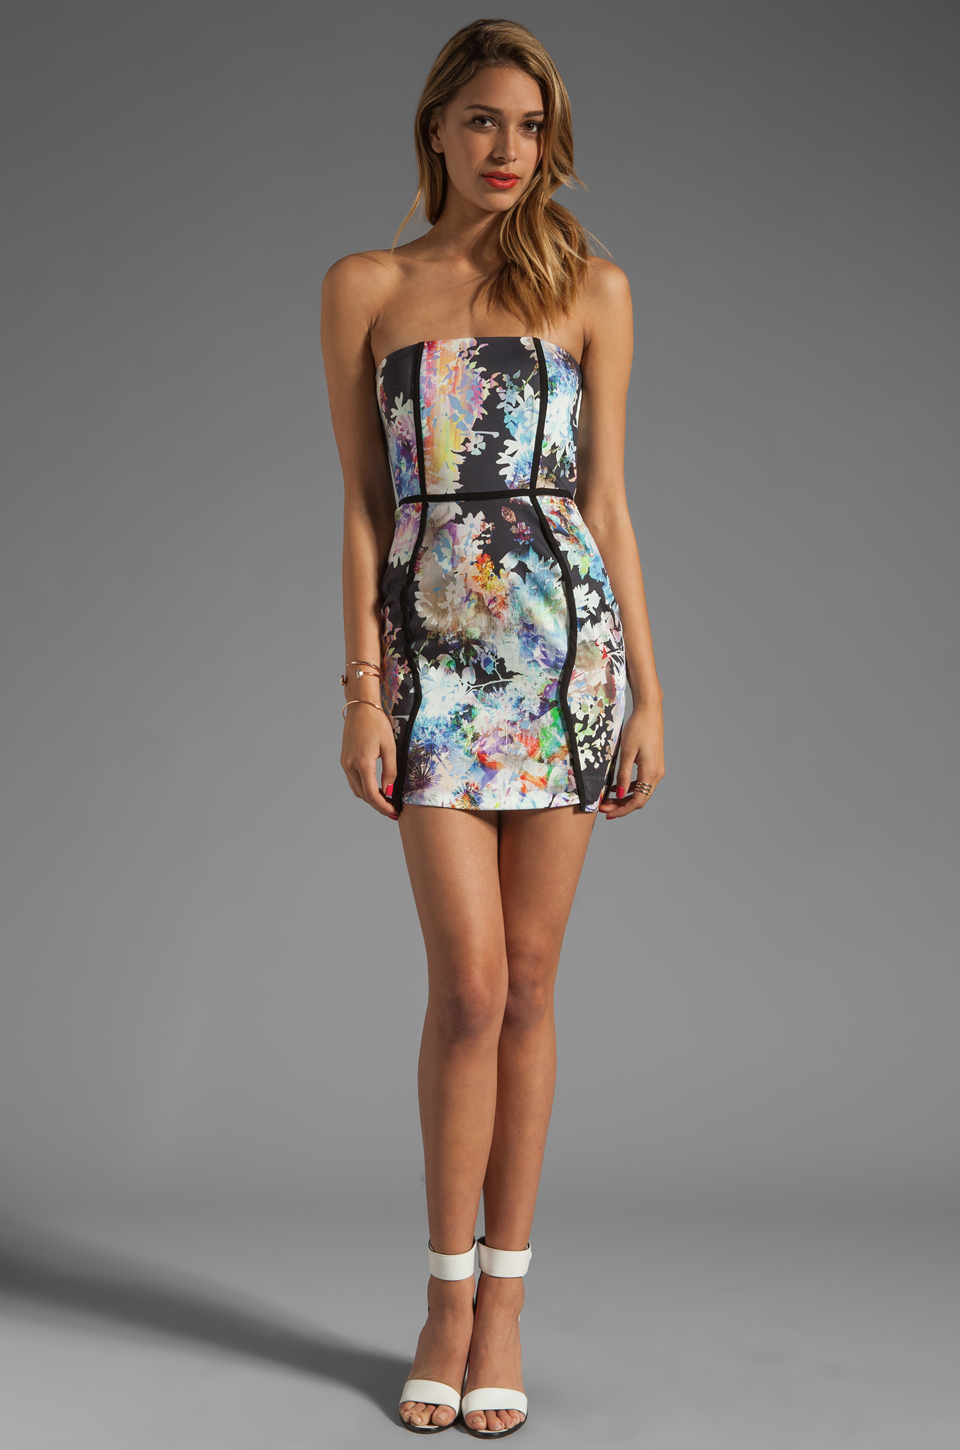 Talulah Isle of Love Dress in Floral